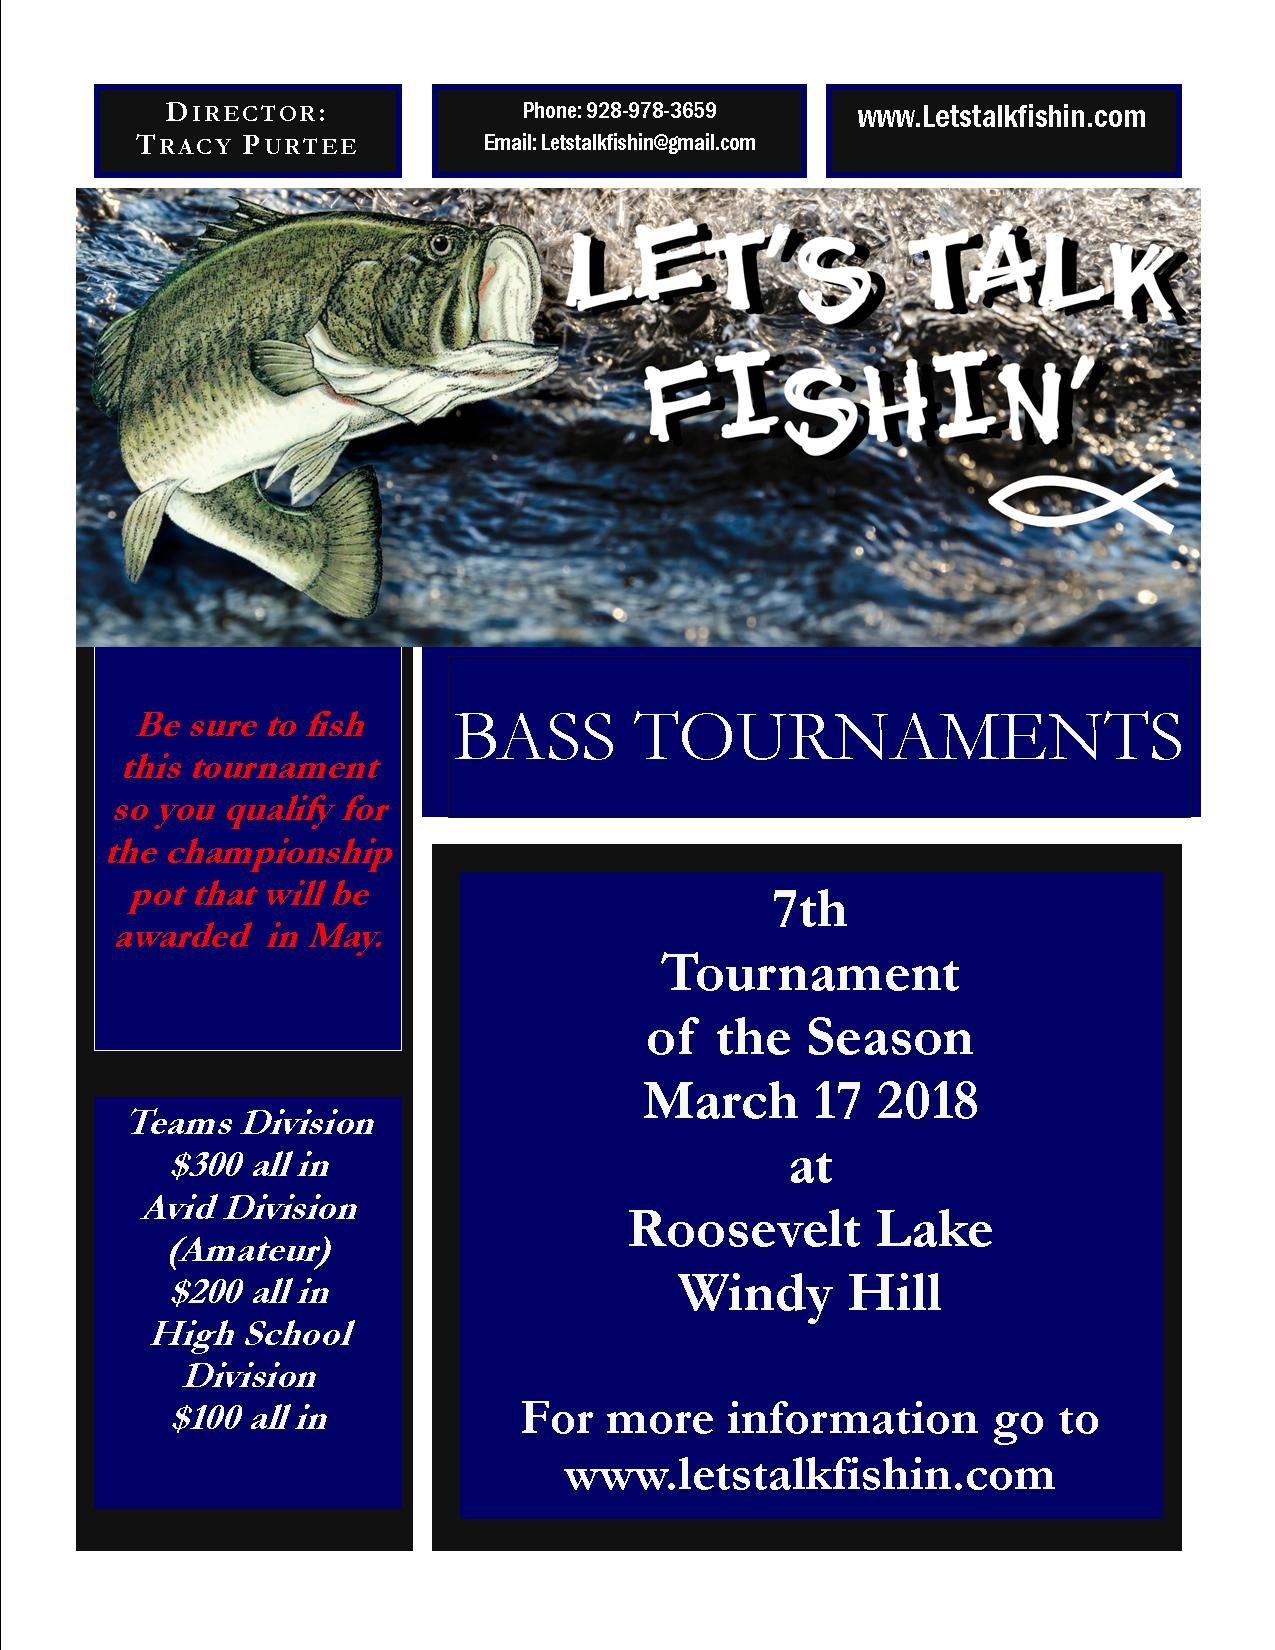 Click image for larger version  Name:7th Tournament.jpg Views:1915 Size:283.6 KB ID:96826